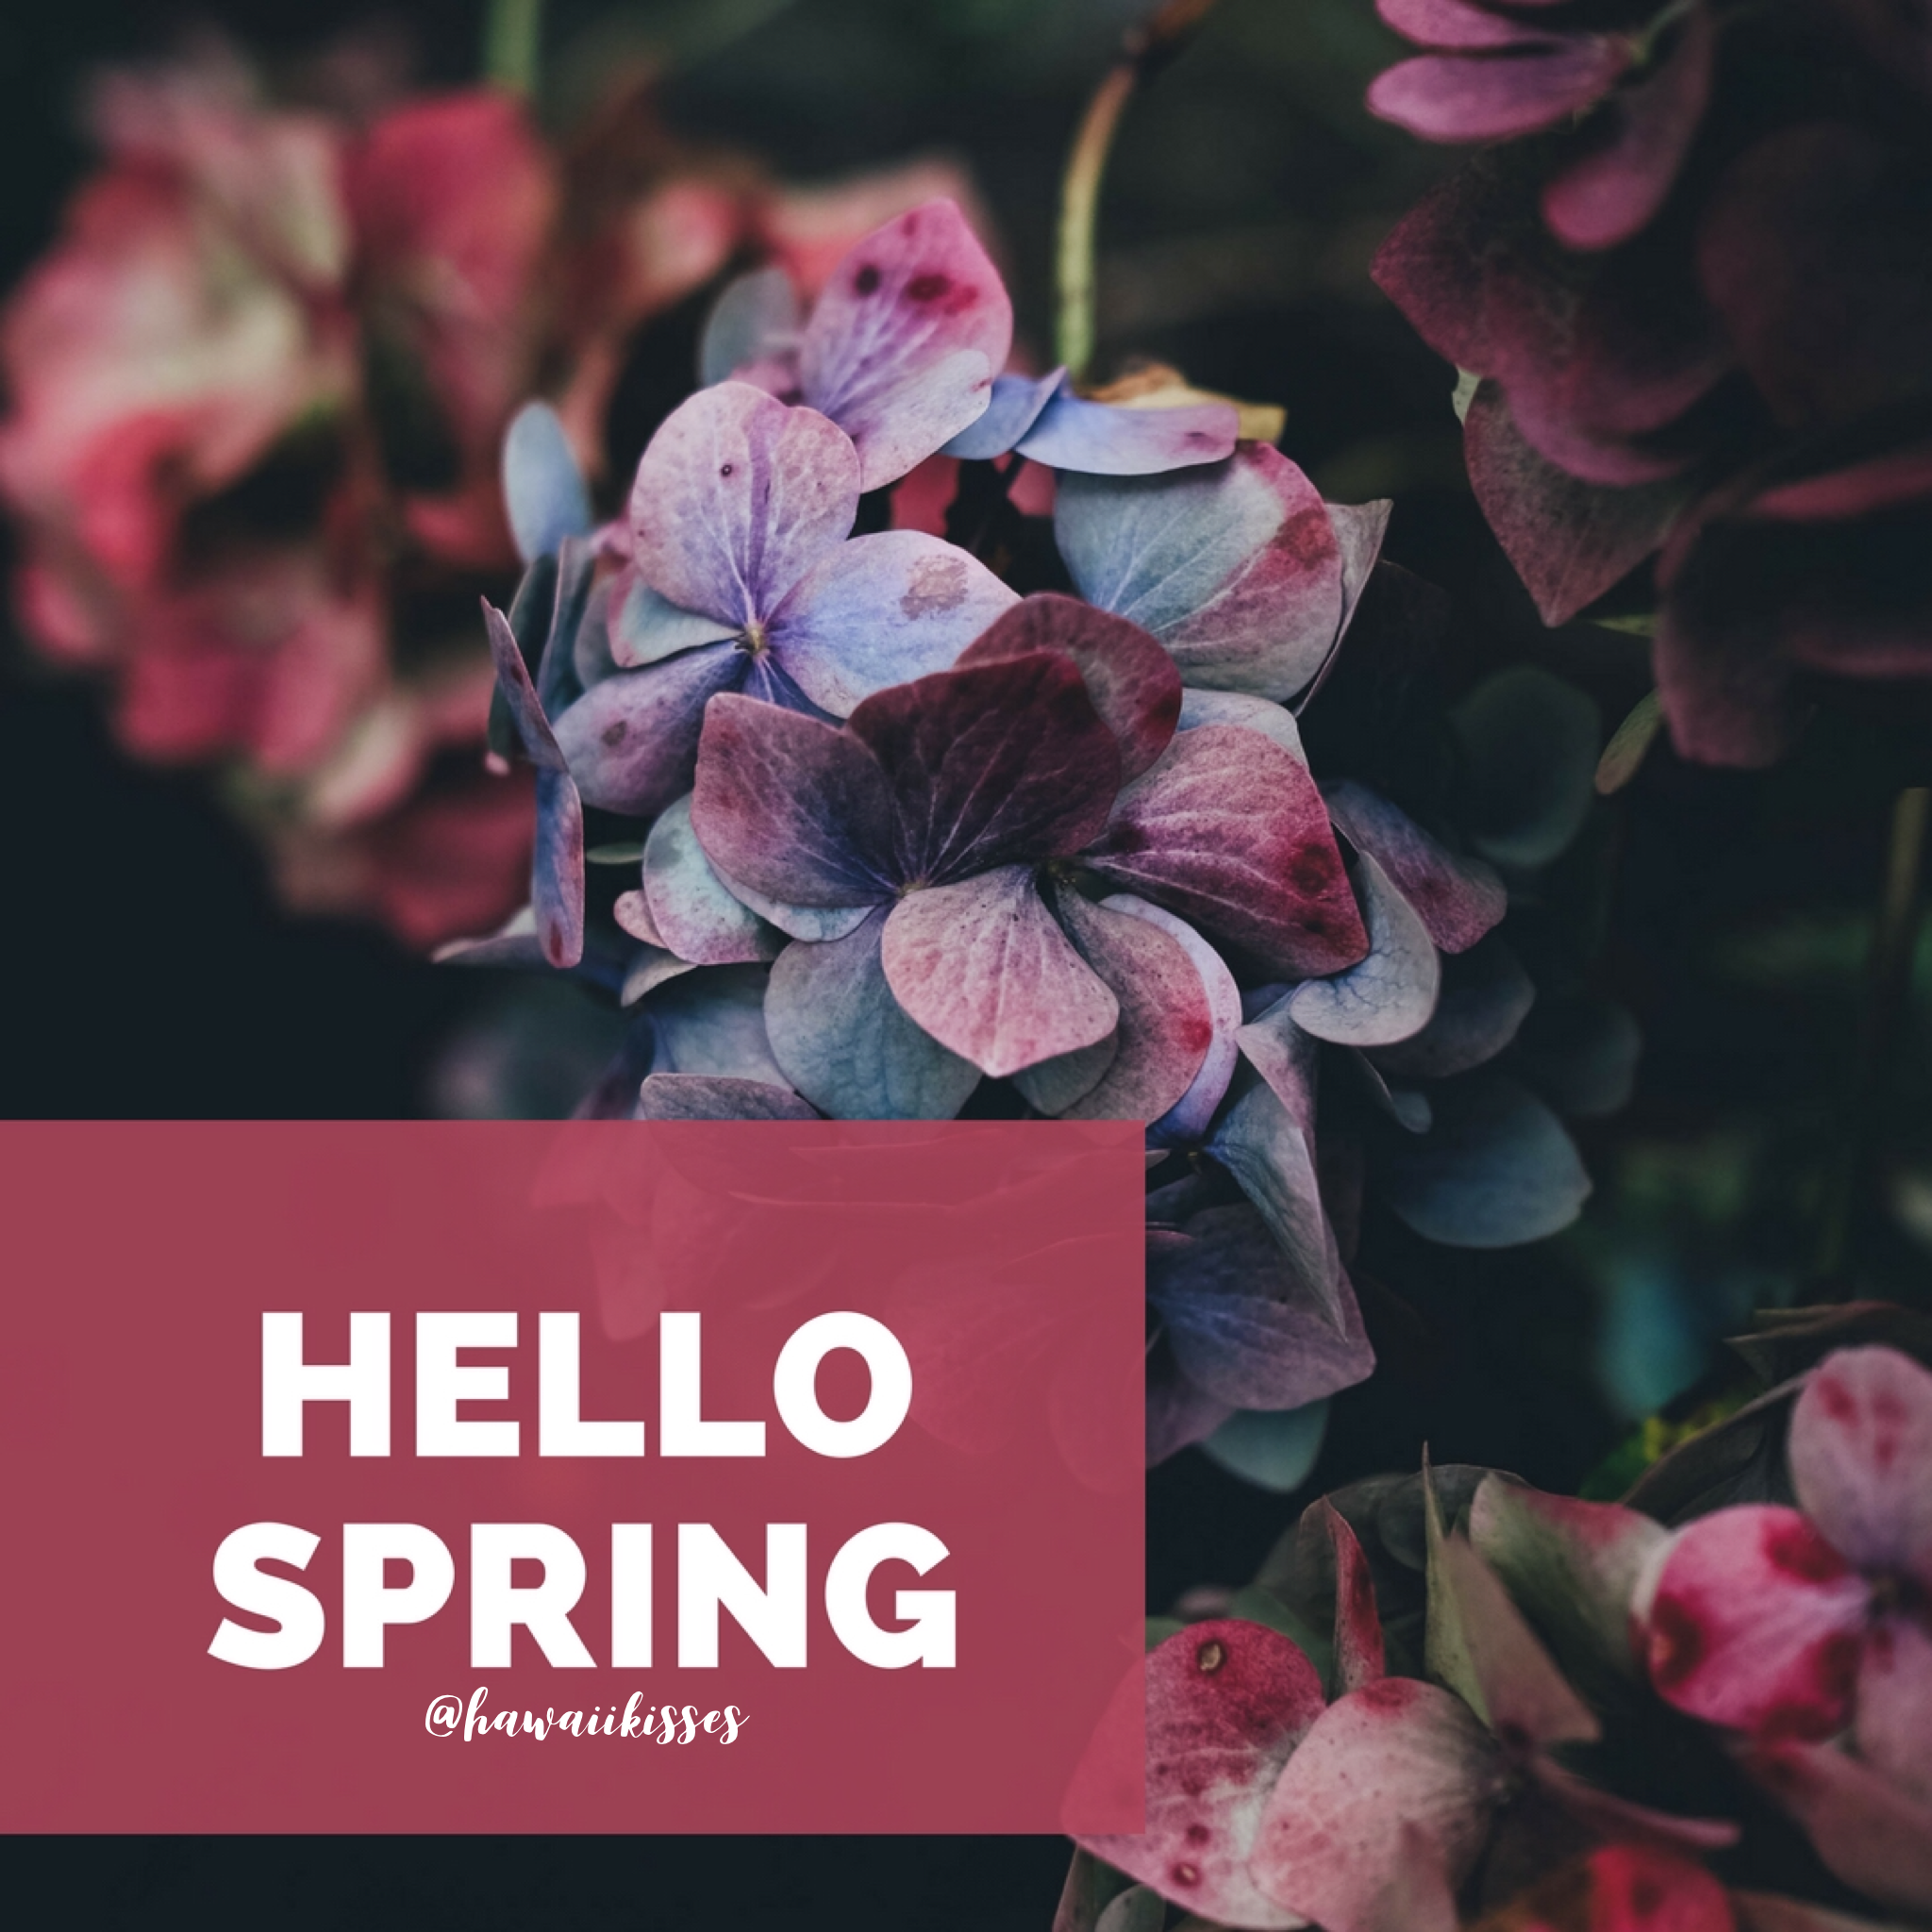 Happy first day of Spring  • • • #lipsense #senegence #makeup #beauty #beautiful #spring #mom #momlife #springbreak #boymom #sahm #wahm #beautyblogger #bblogger #blog #mylife #hawaii #oahu #beach #beachlife #tuesday